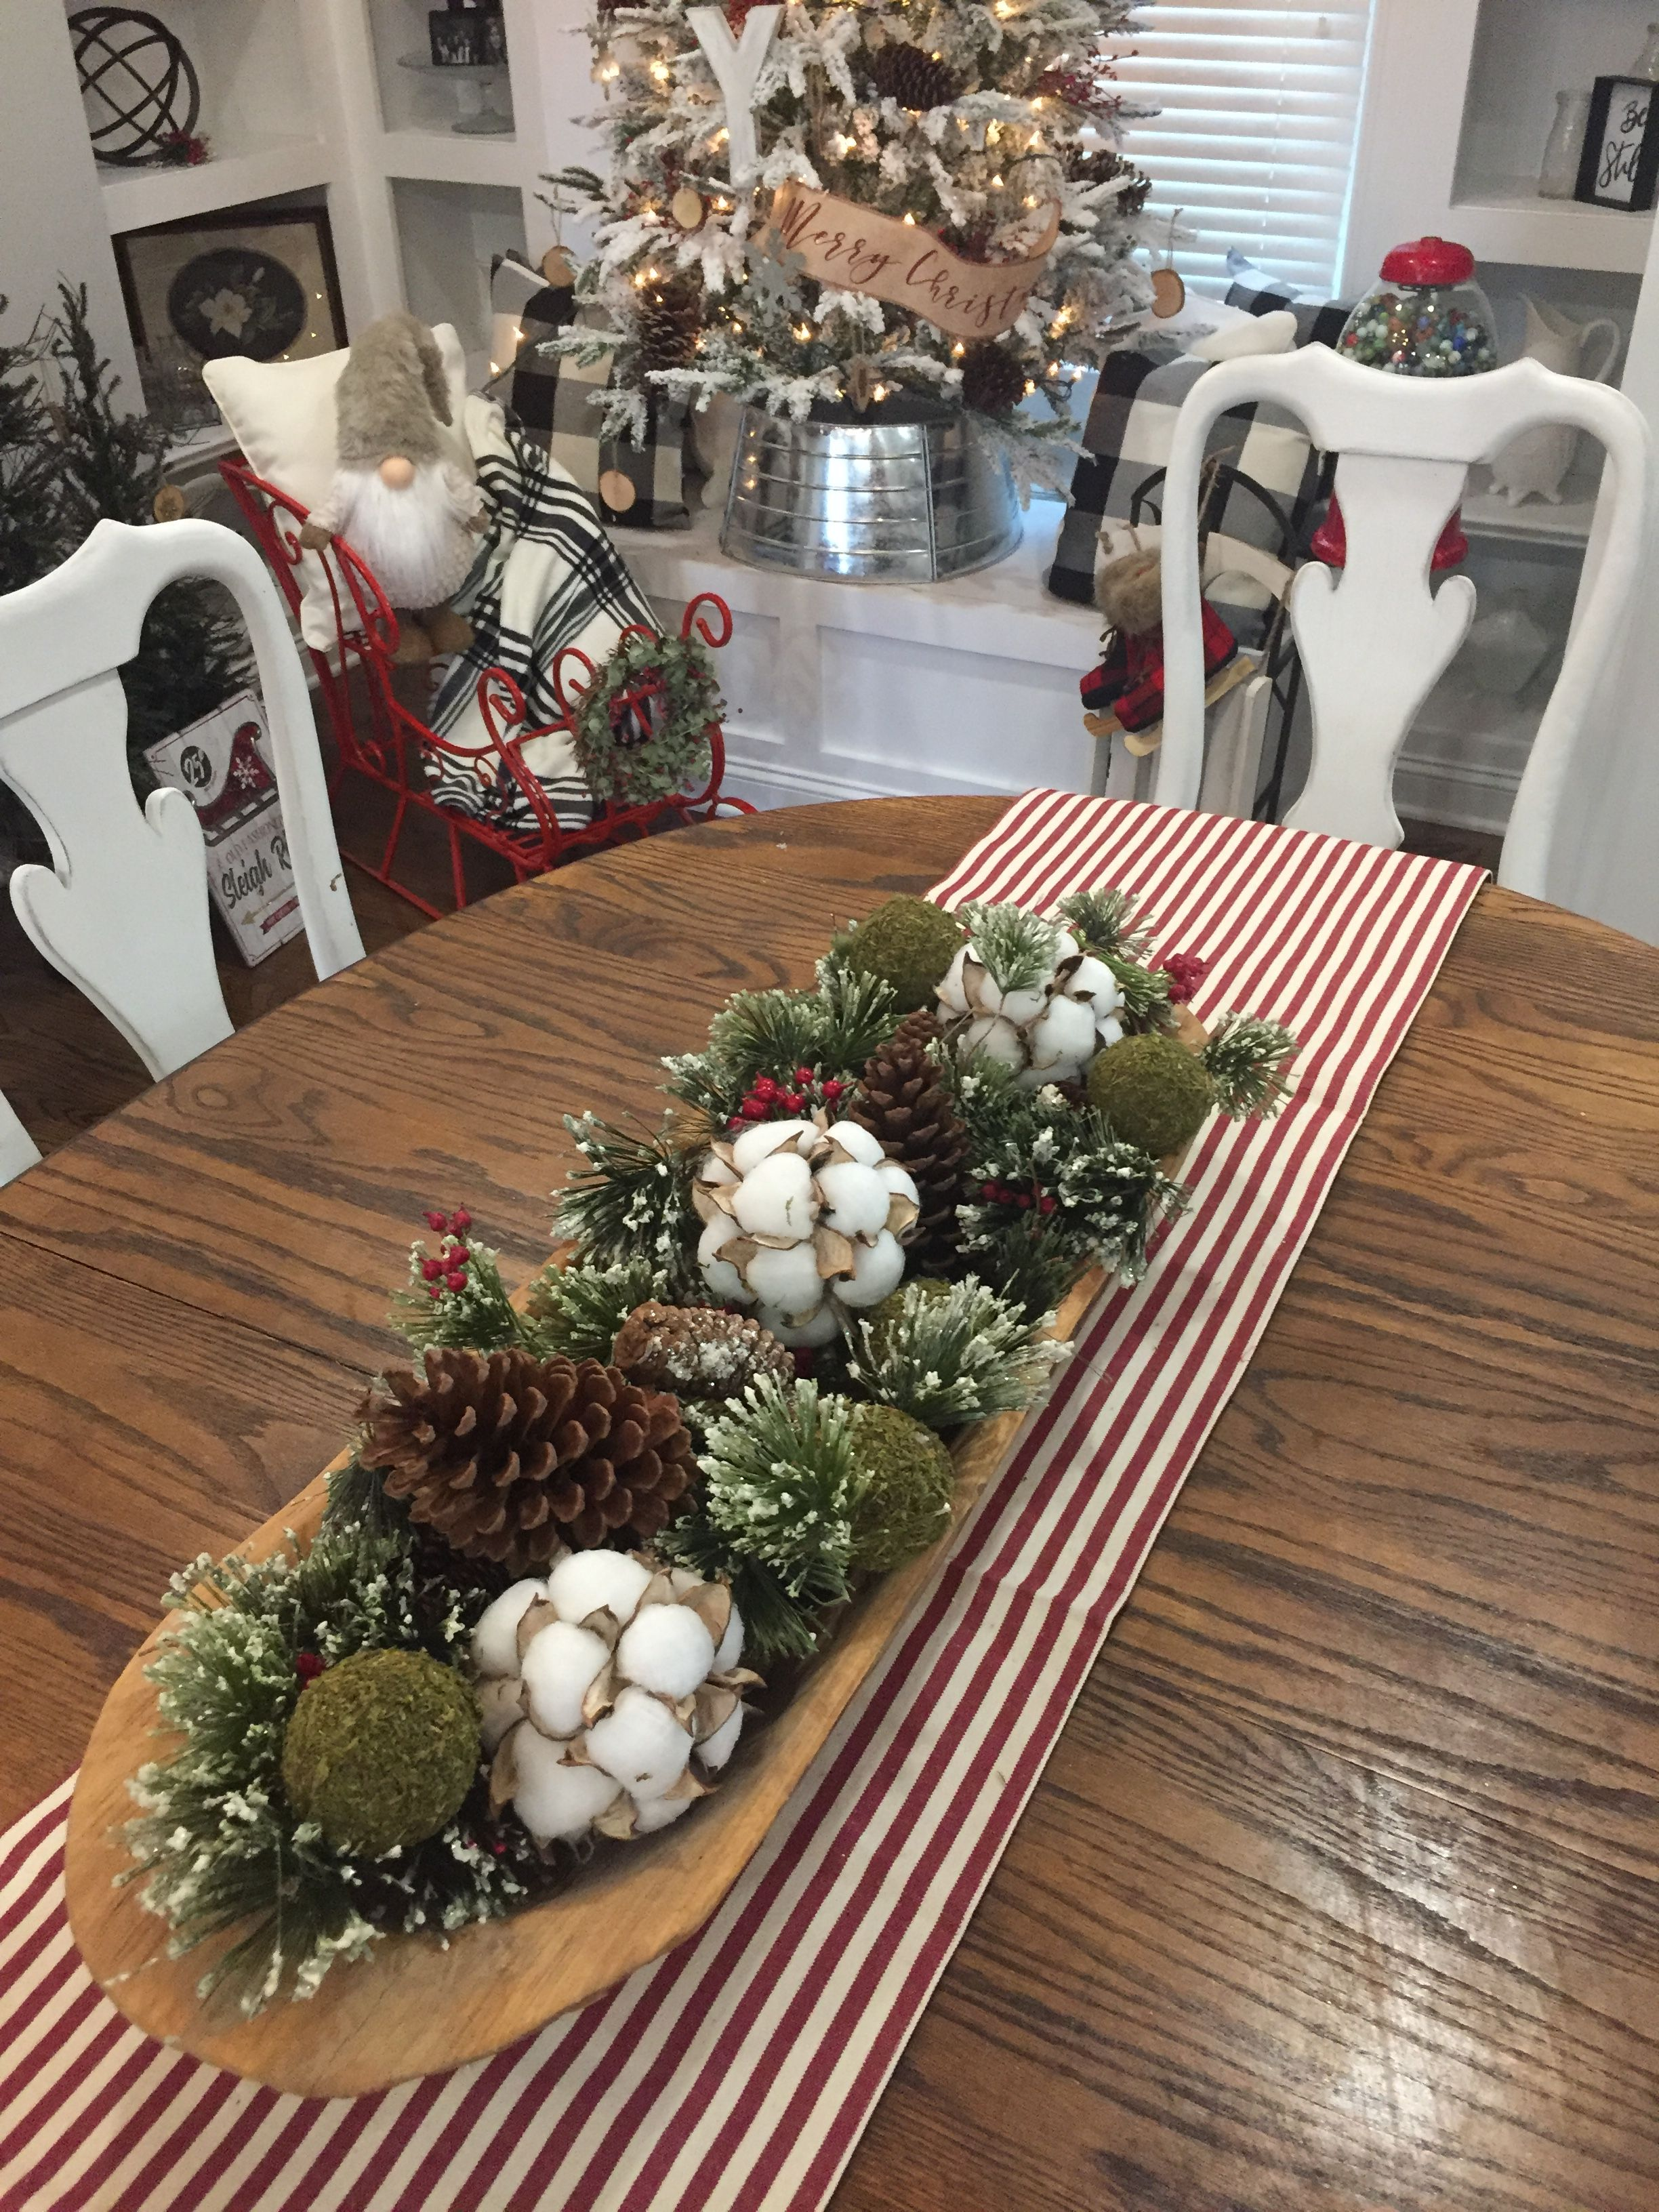 Pin By Laurie Knight On Farmhouse Christmas Christmas Dining Room Table Christmas Table Centerpieces Christmas Bowl Decorations